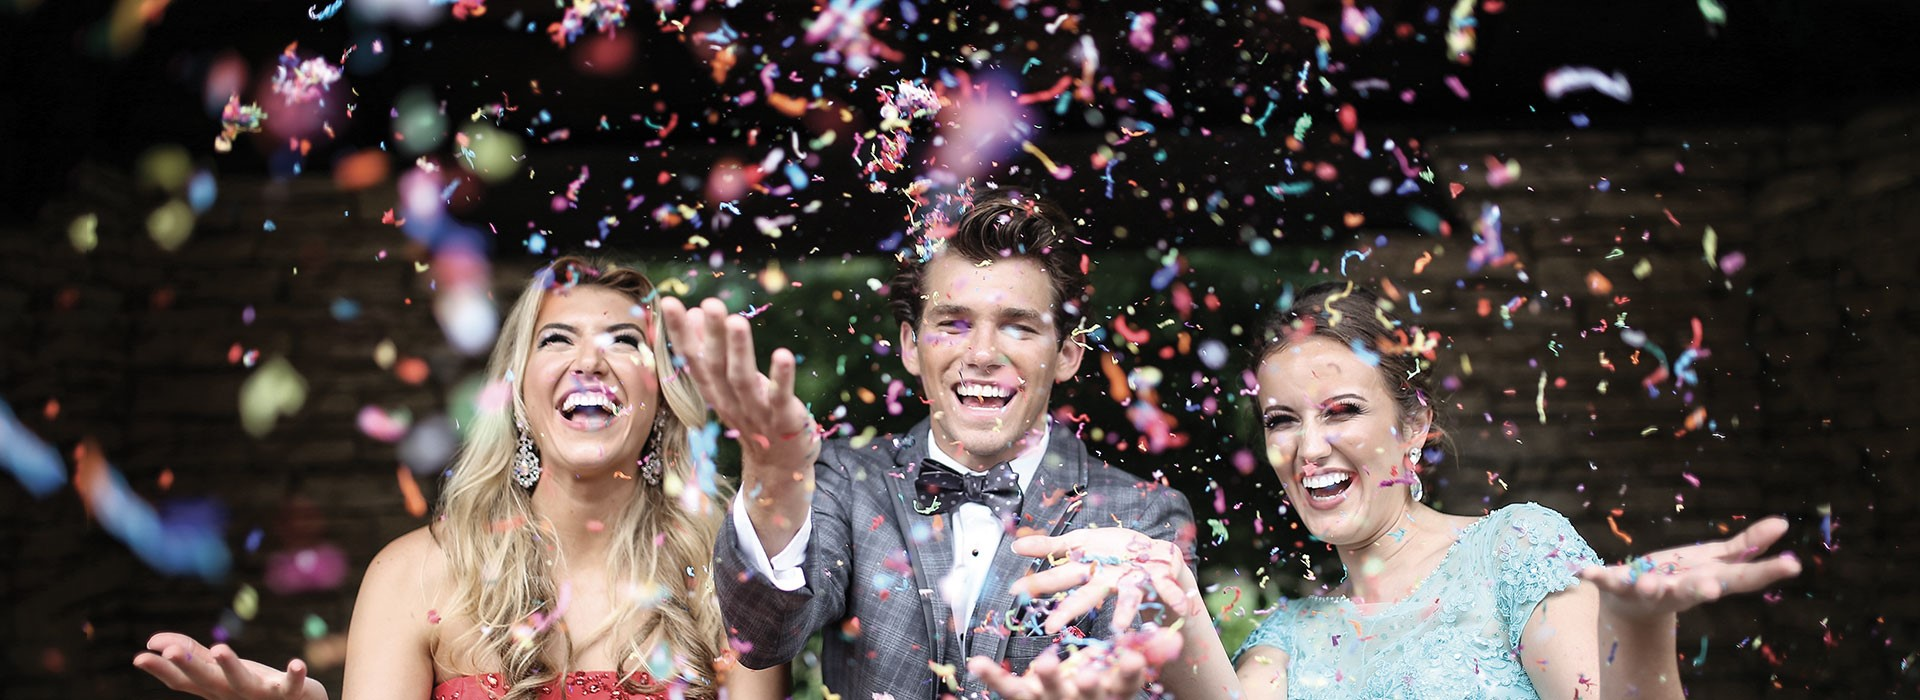 Homecoming confetti image